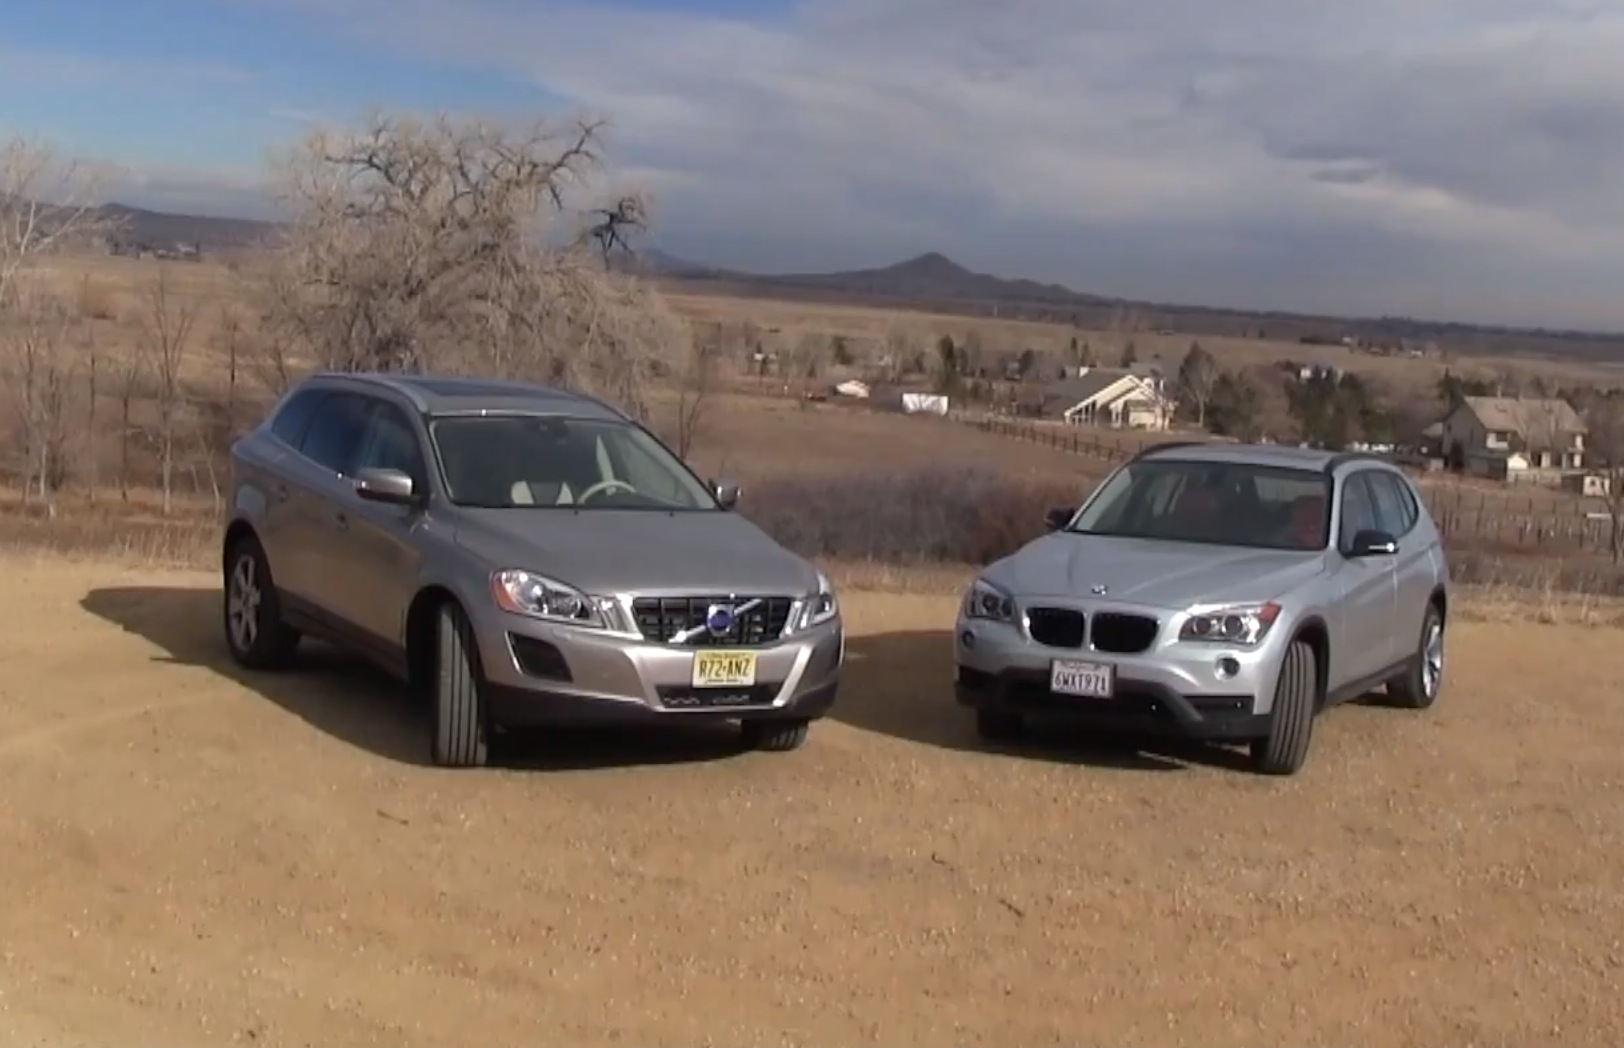 2013 volvo xc60 versus bmw x1 0 60 mph review by tflcar. Black Bedroom Furniture Sets. Home Design Ideas